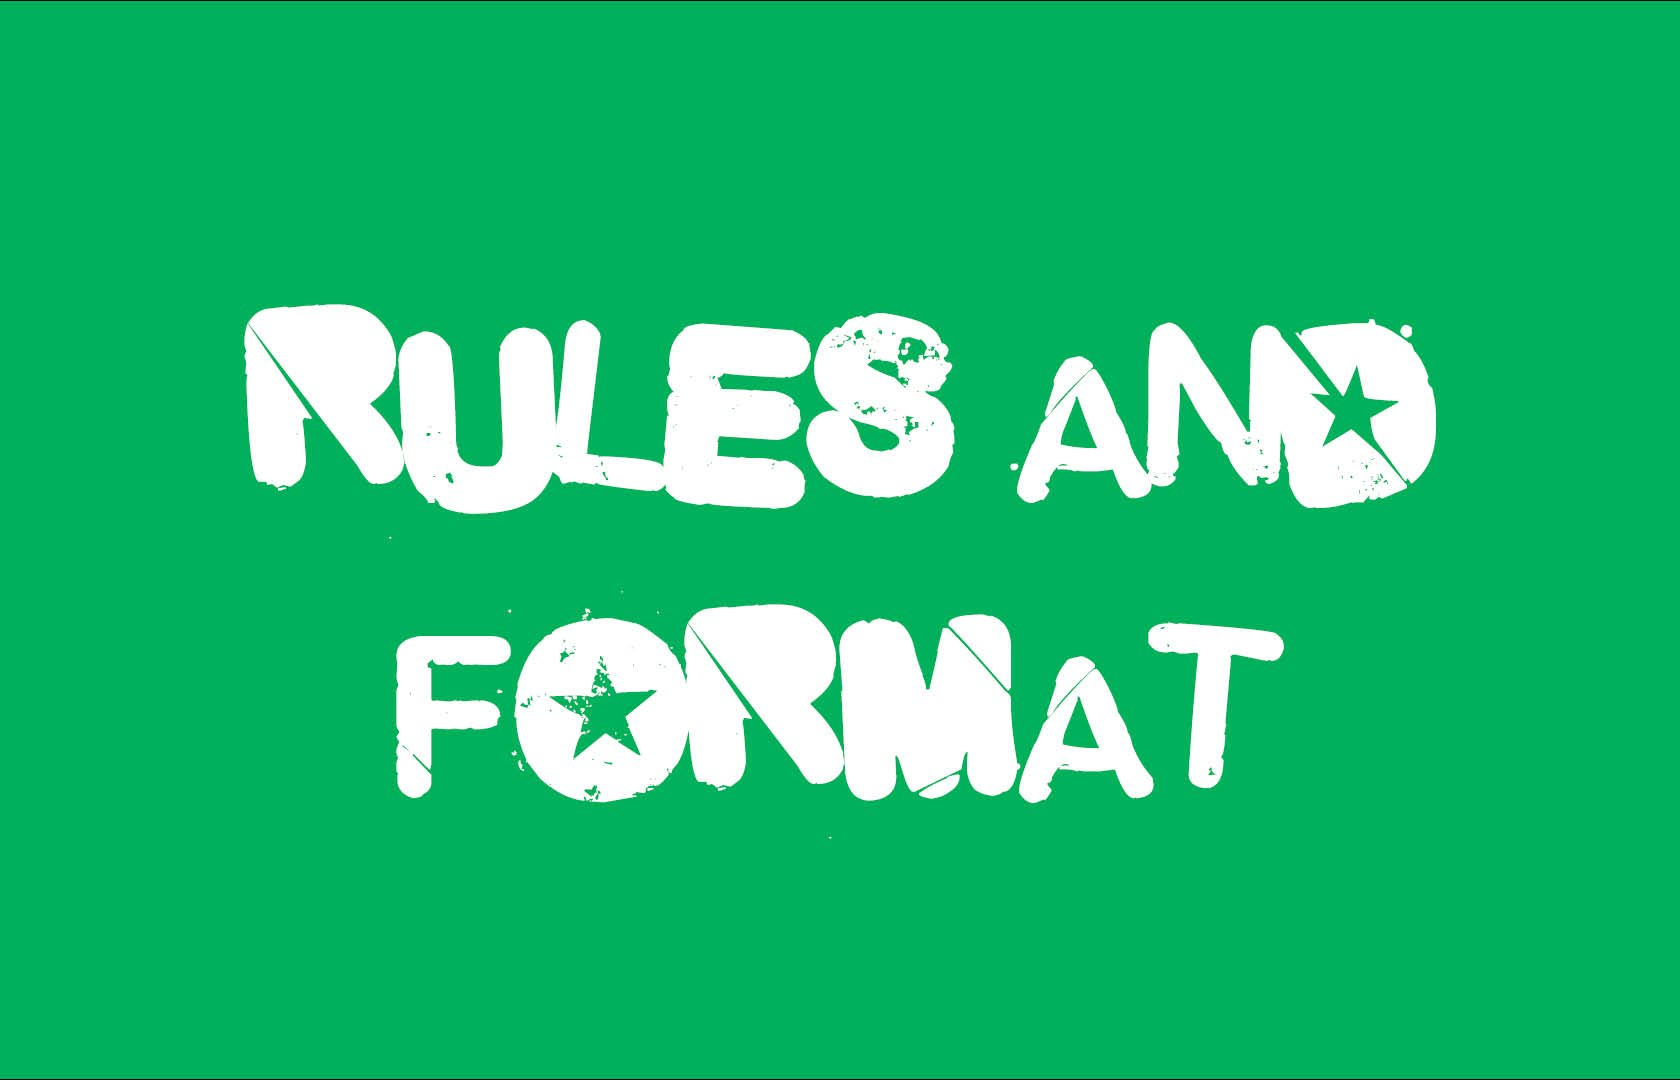 Rules & Format